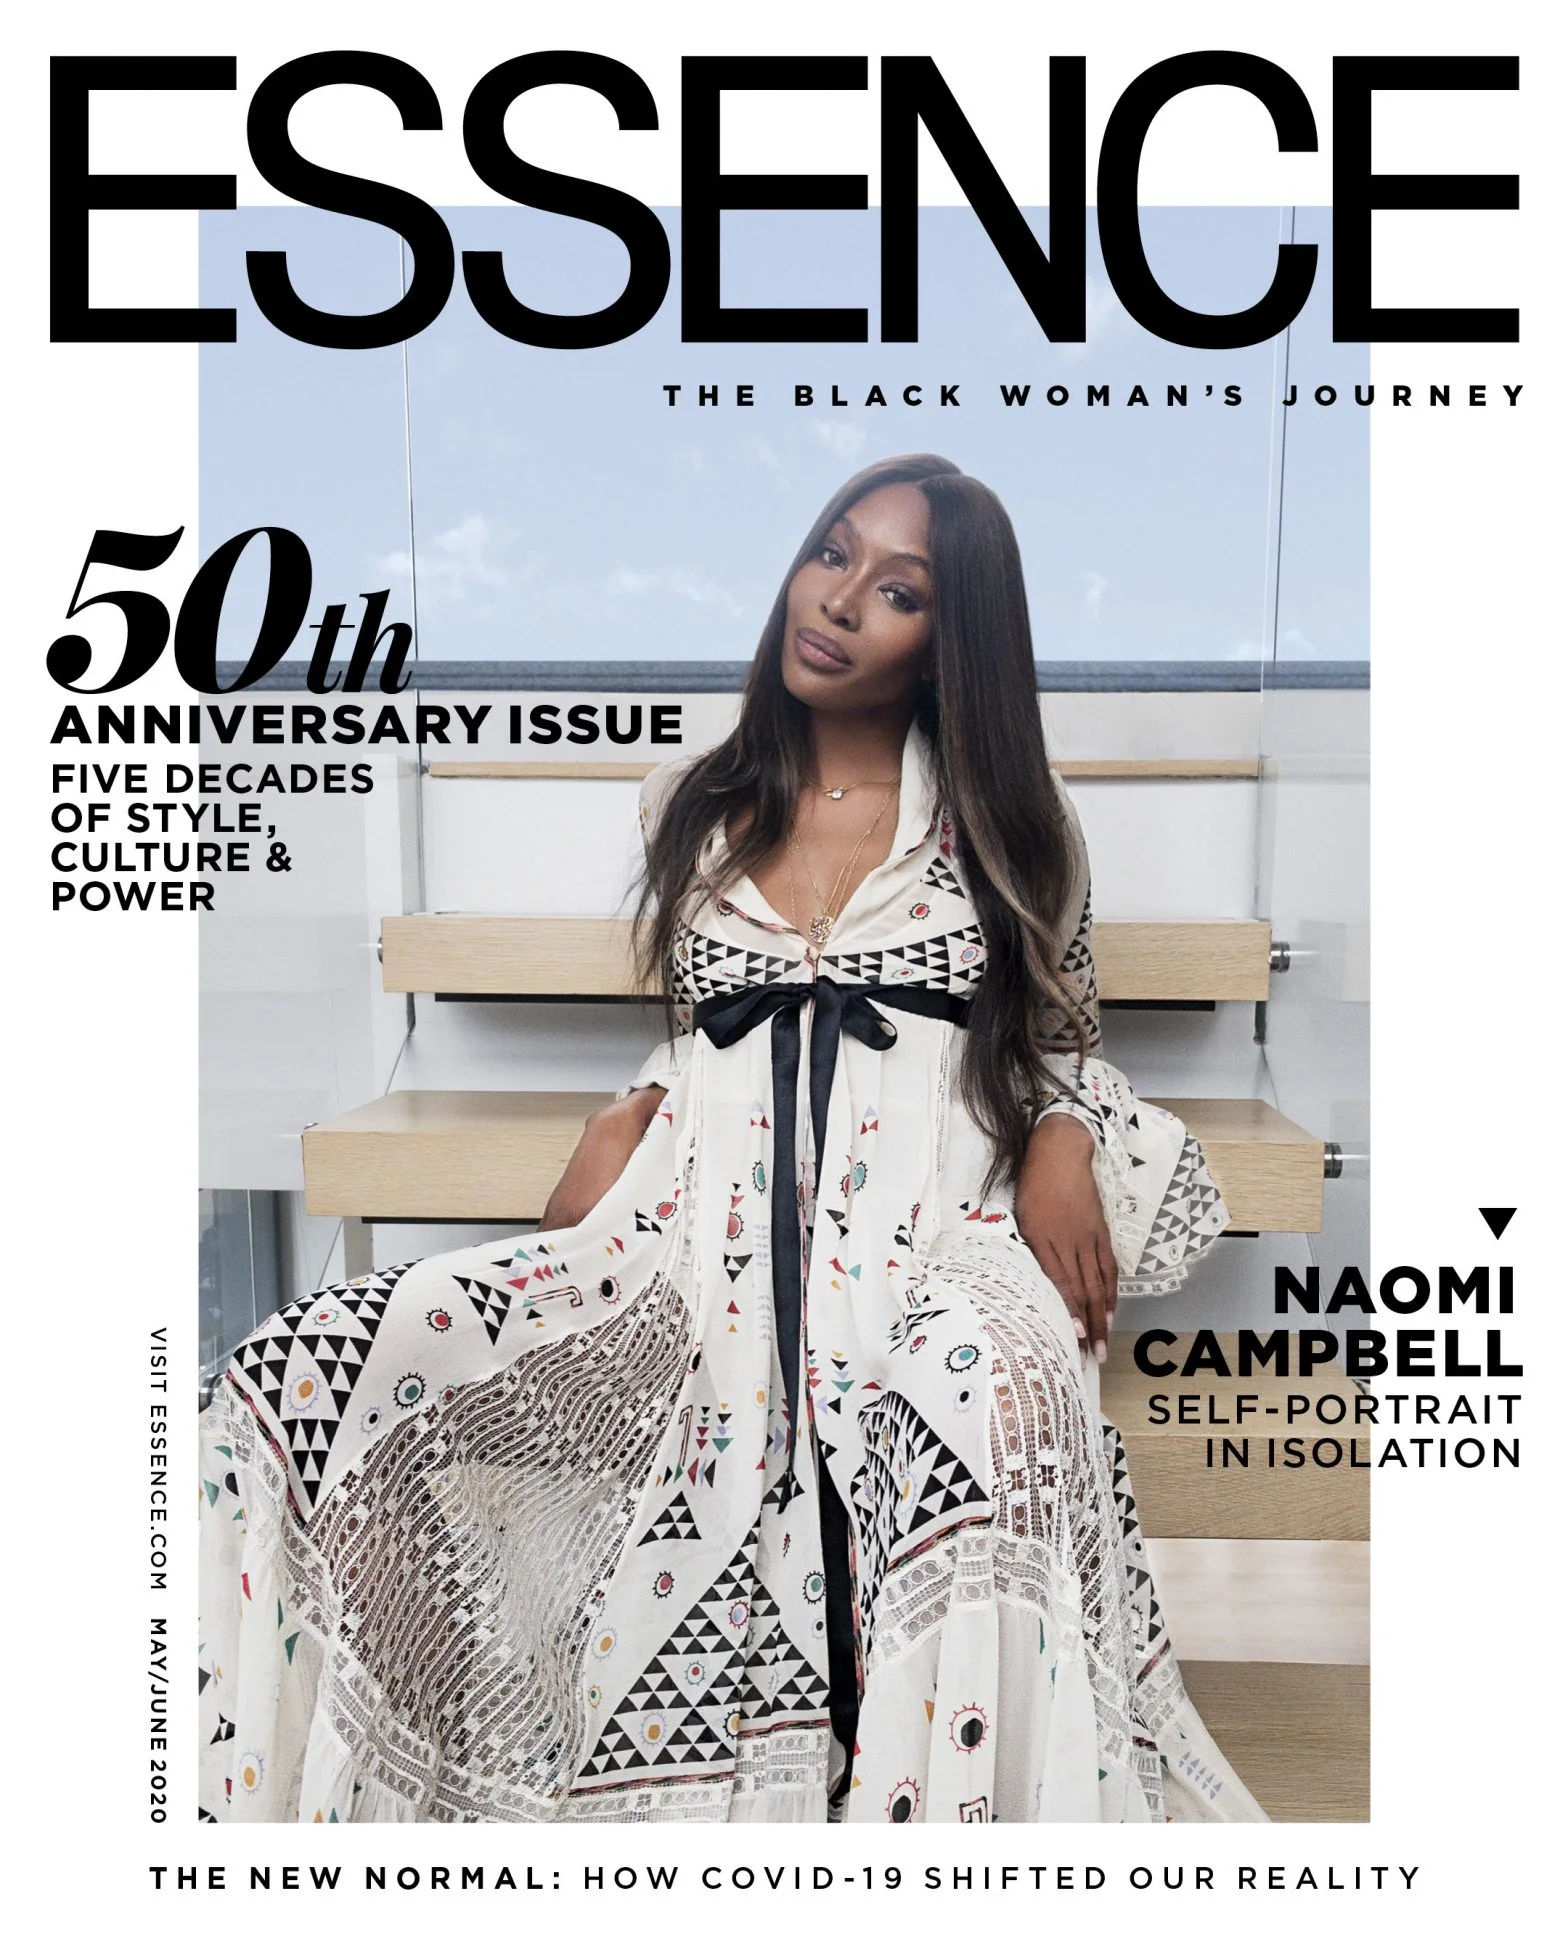 naomi-campbell-photographs-herself-for-essence-50th-anniversary-issue-cover